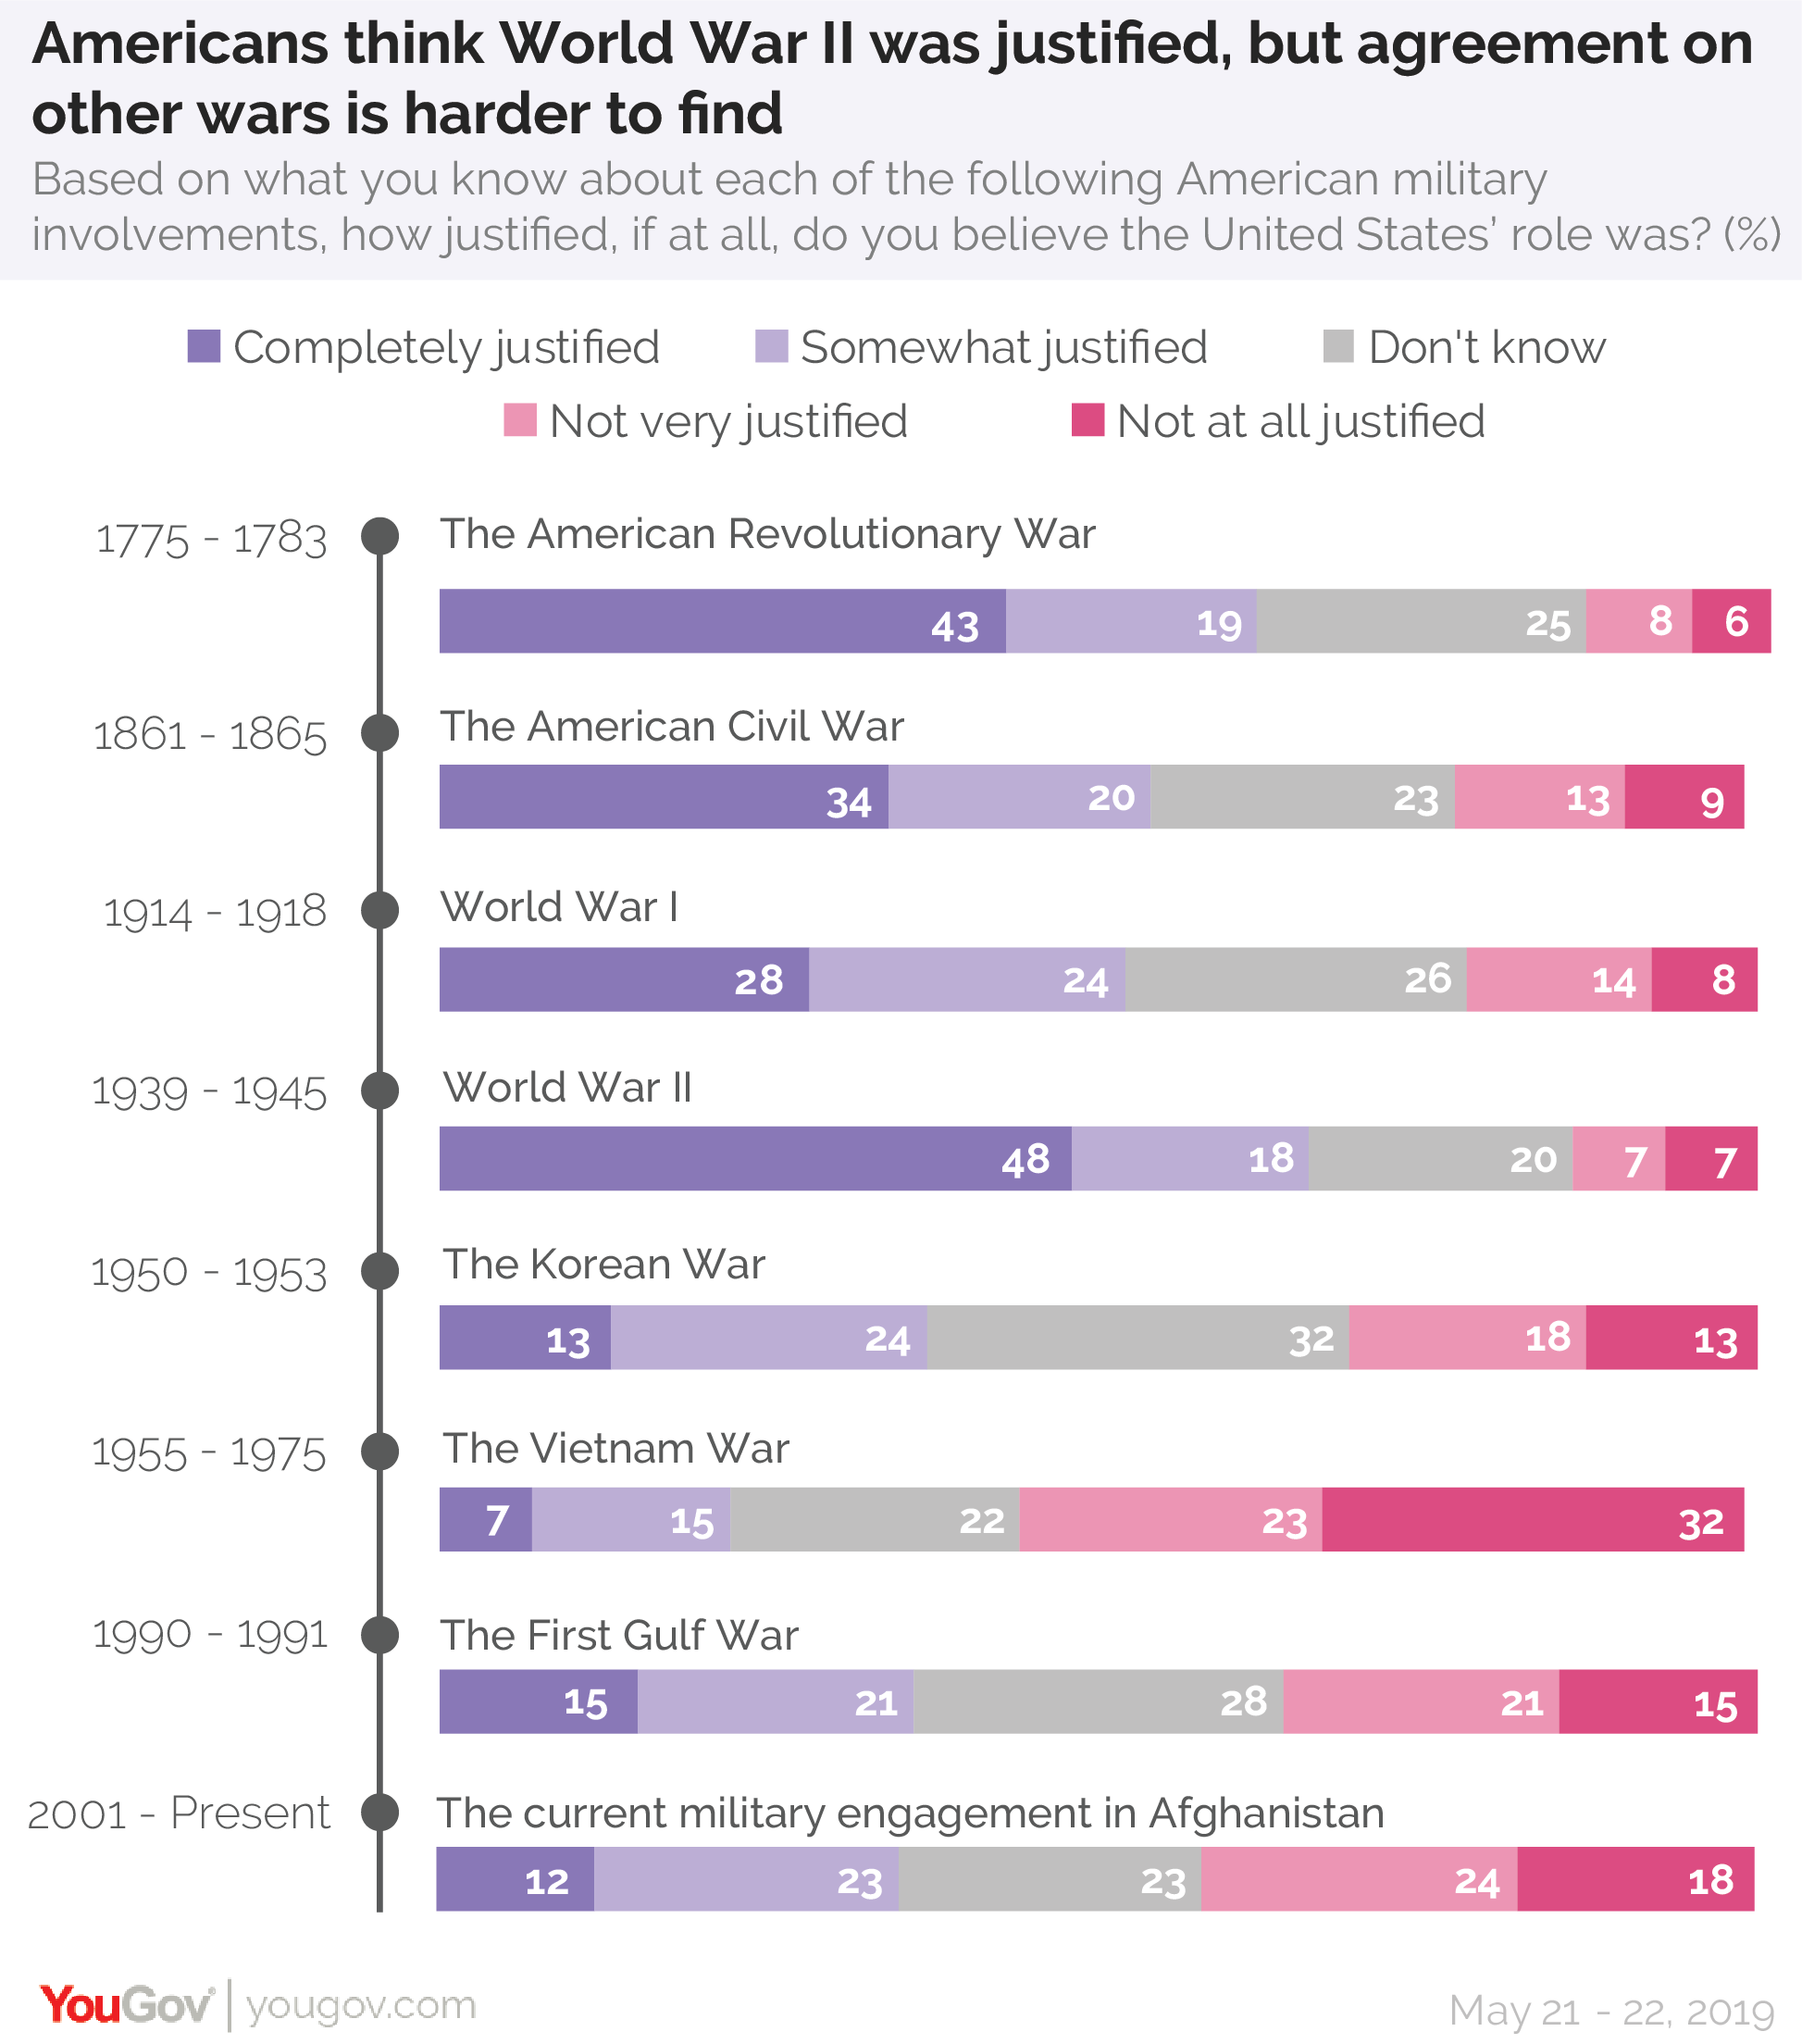 Americans think World War II was justified, but agreement on other wars is harder to find